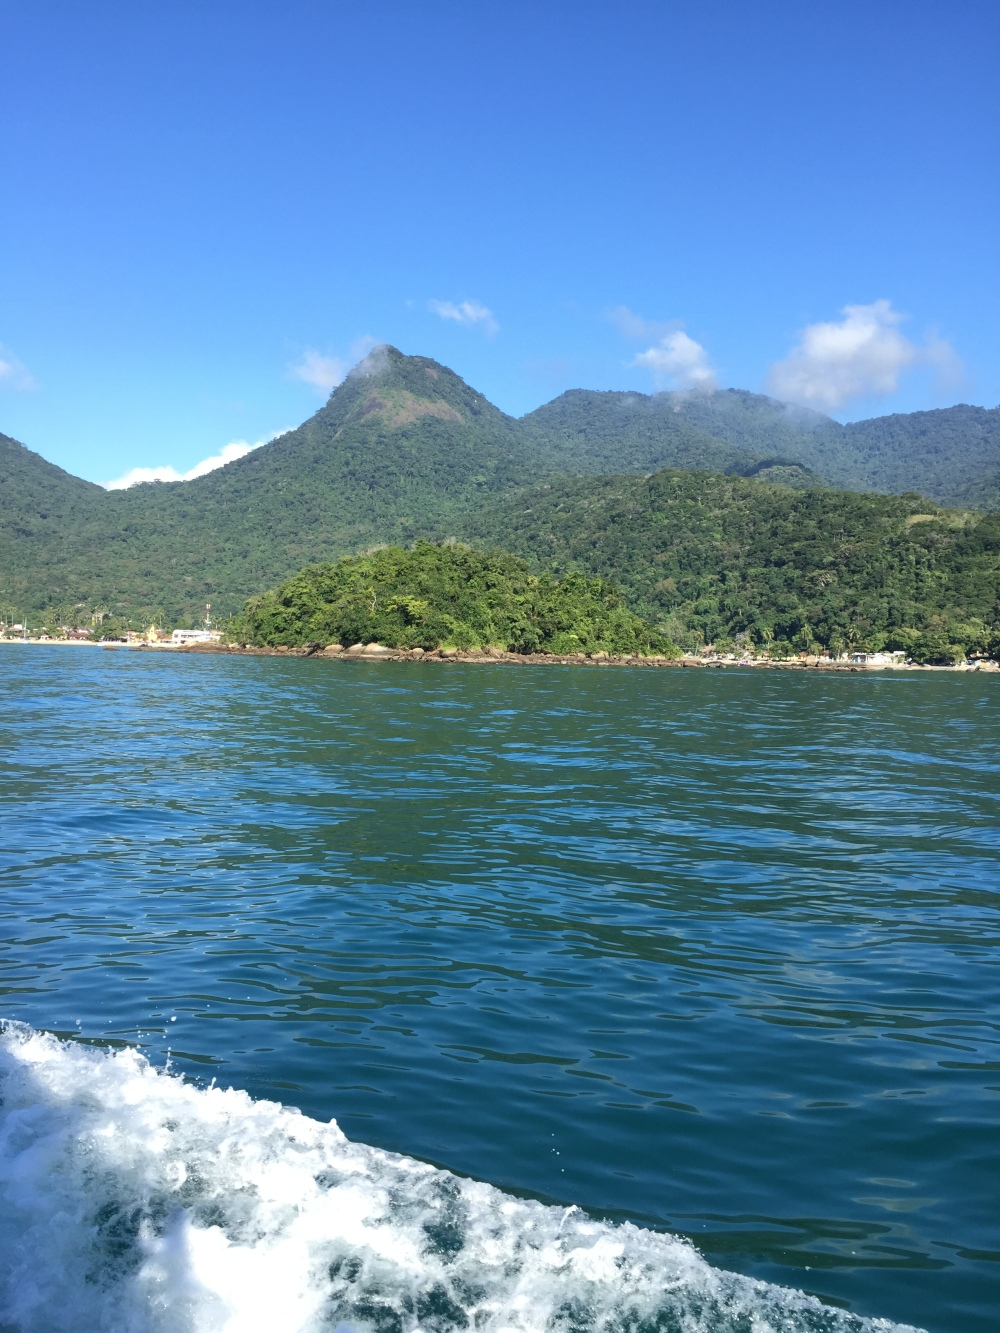 Approaching the island